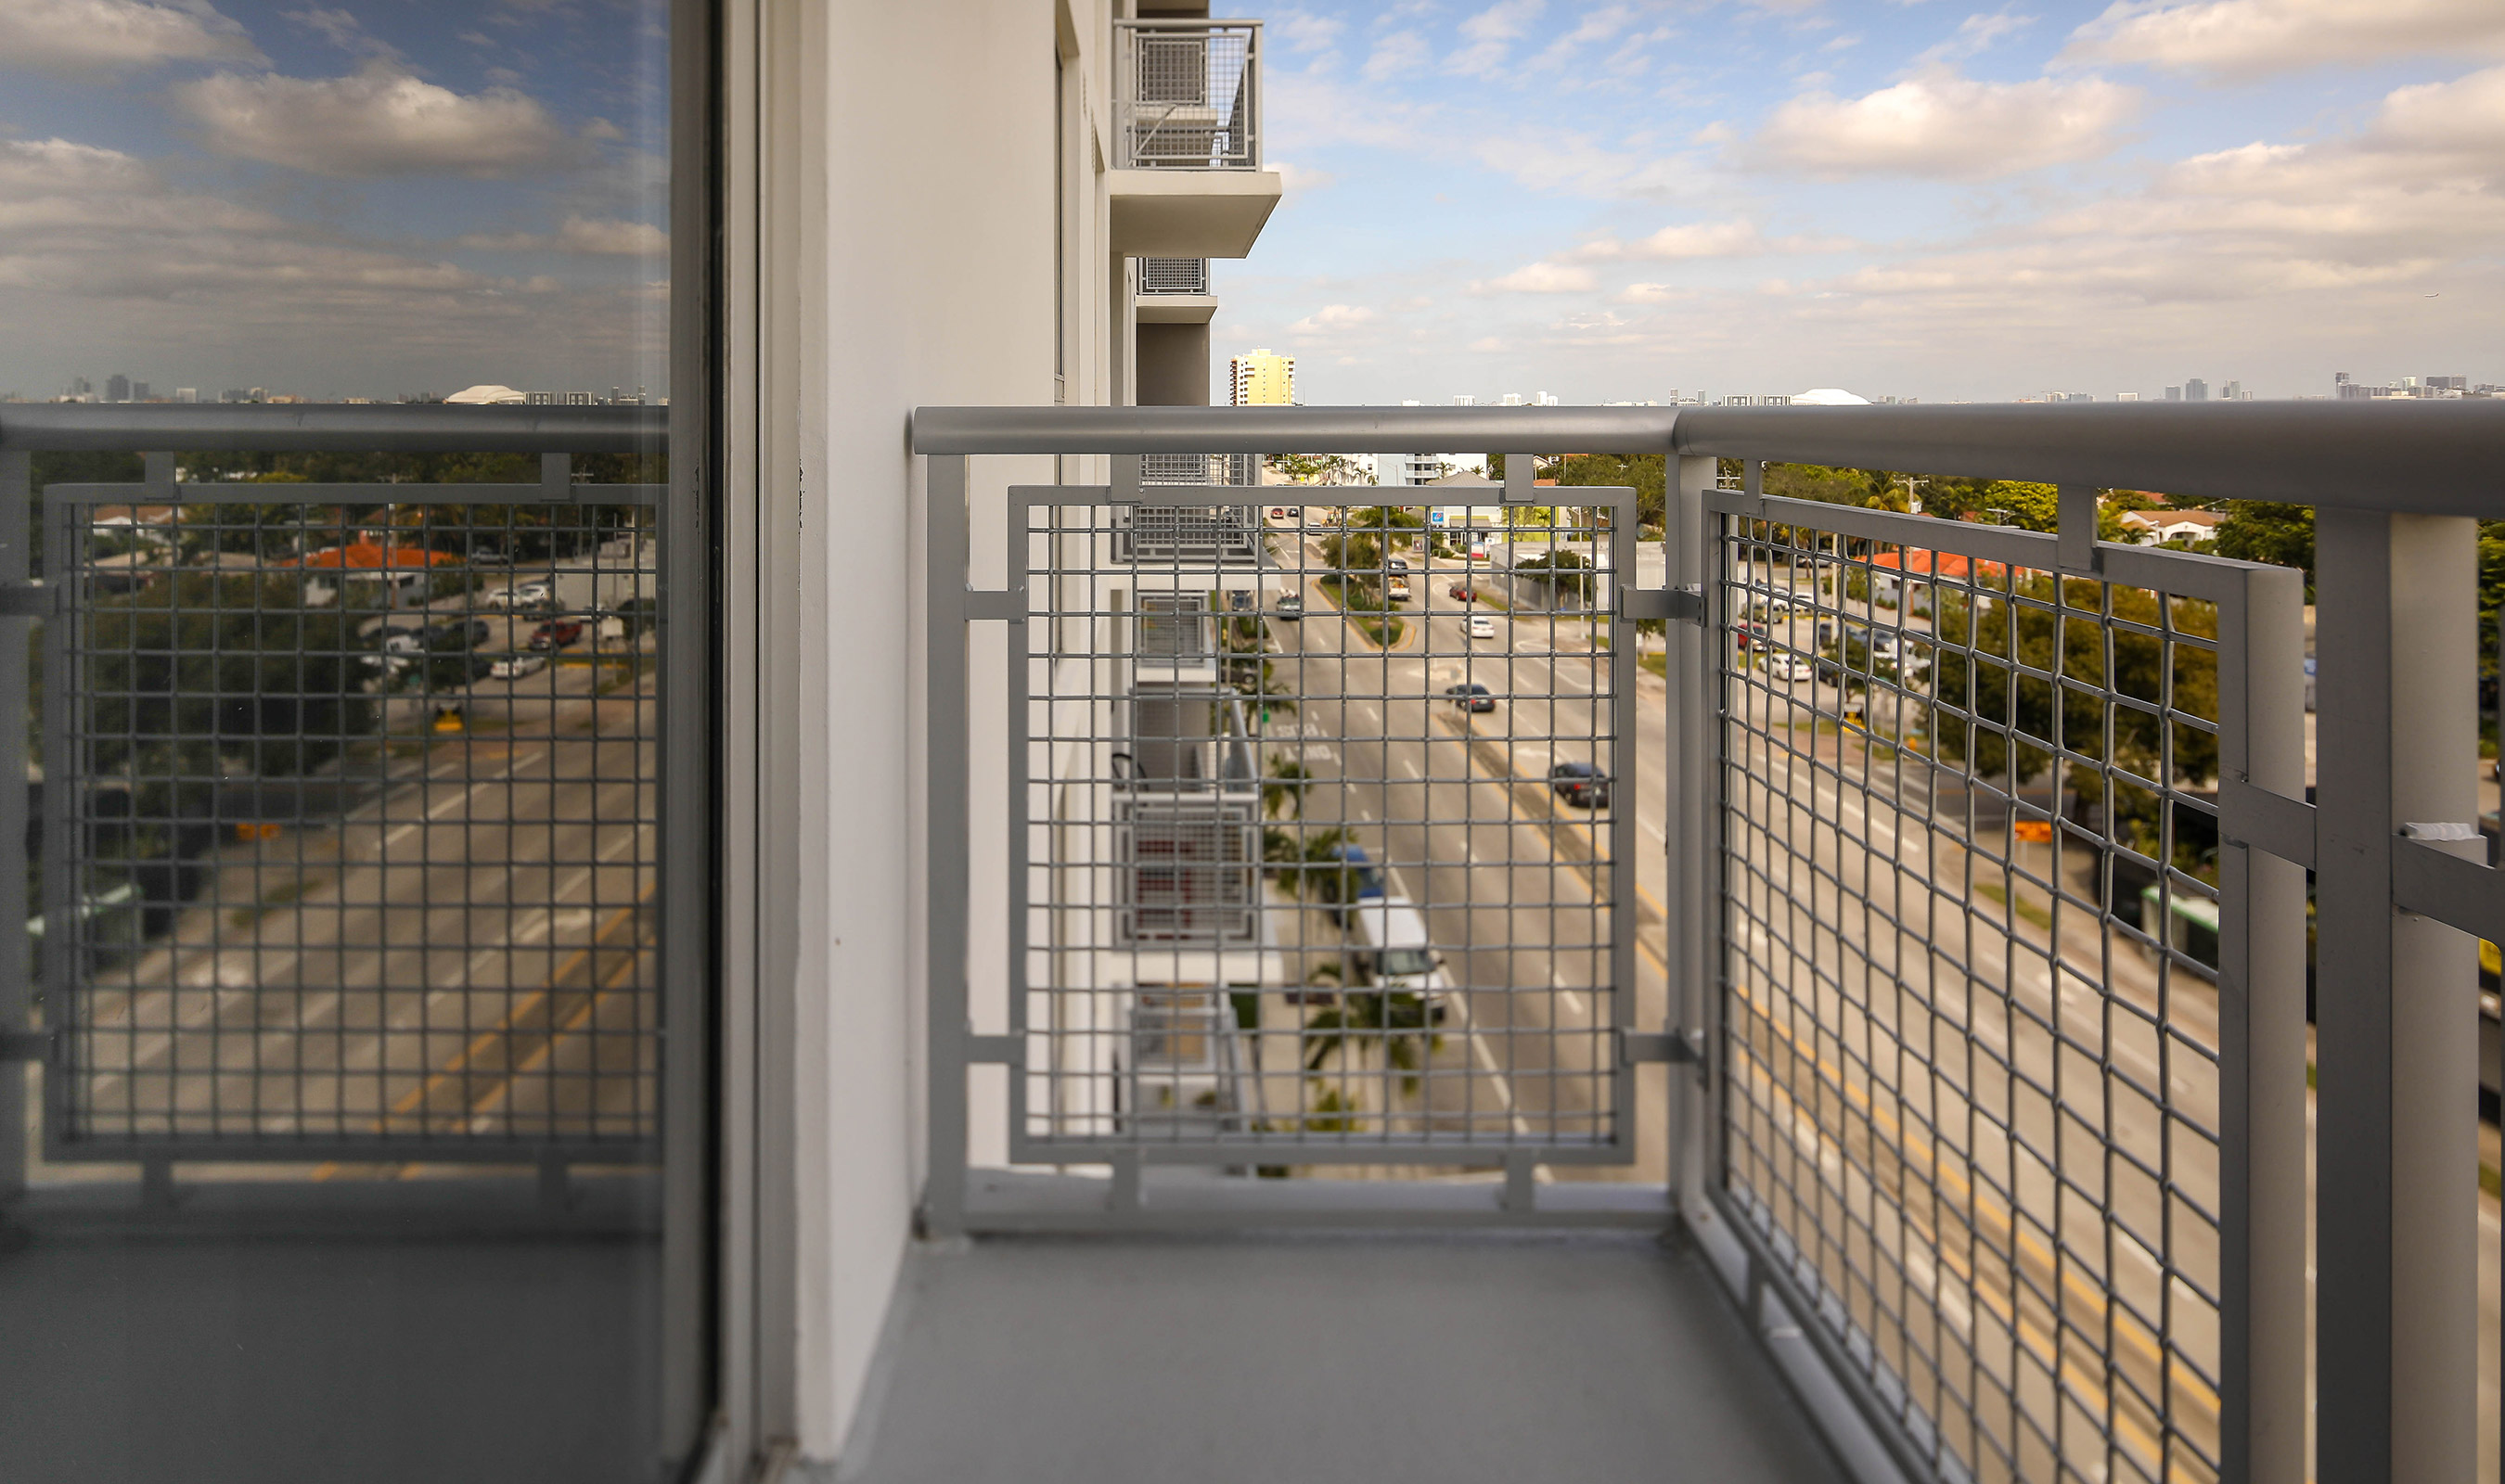 Banker Wire's L-64 woven wire mesh is used as balcony railing for Grave Station Tower luxury apartments and townhomes in Miami, Florida.